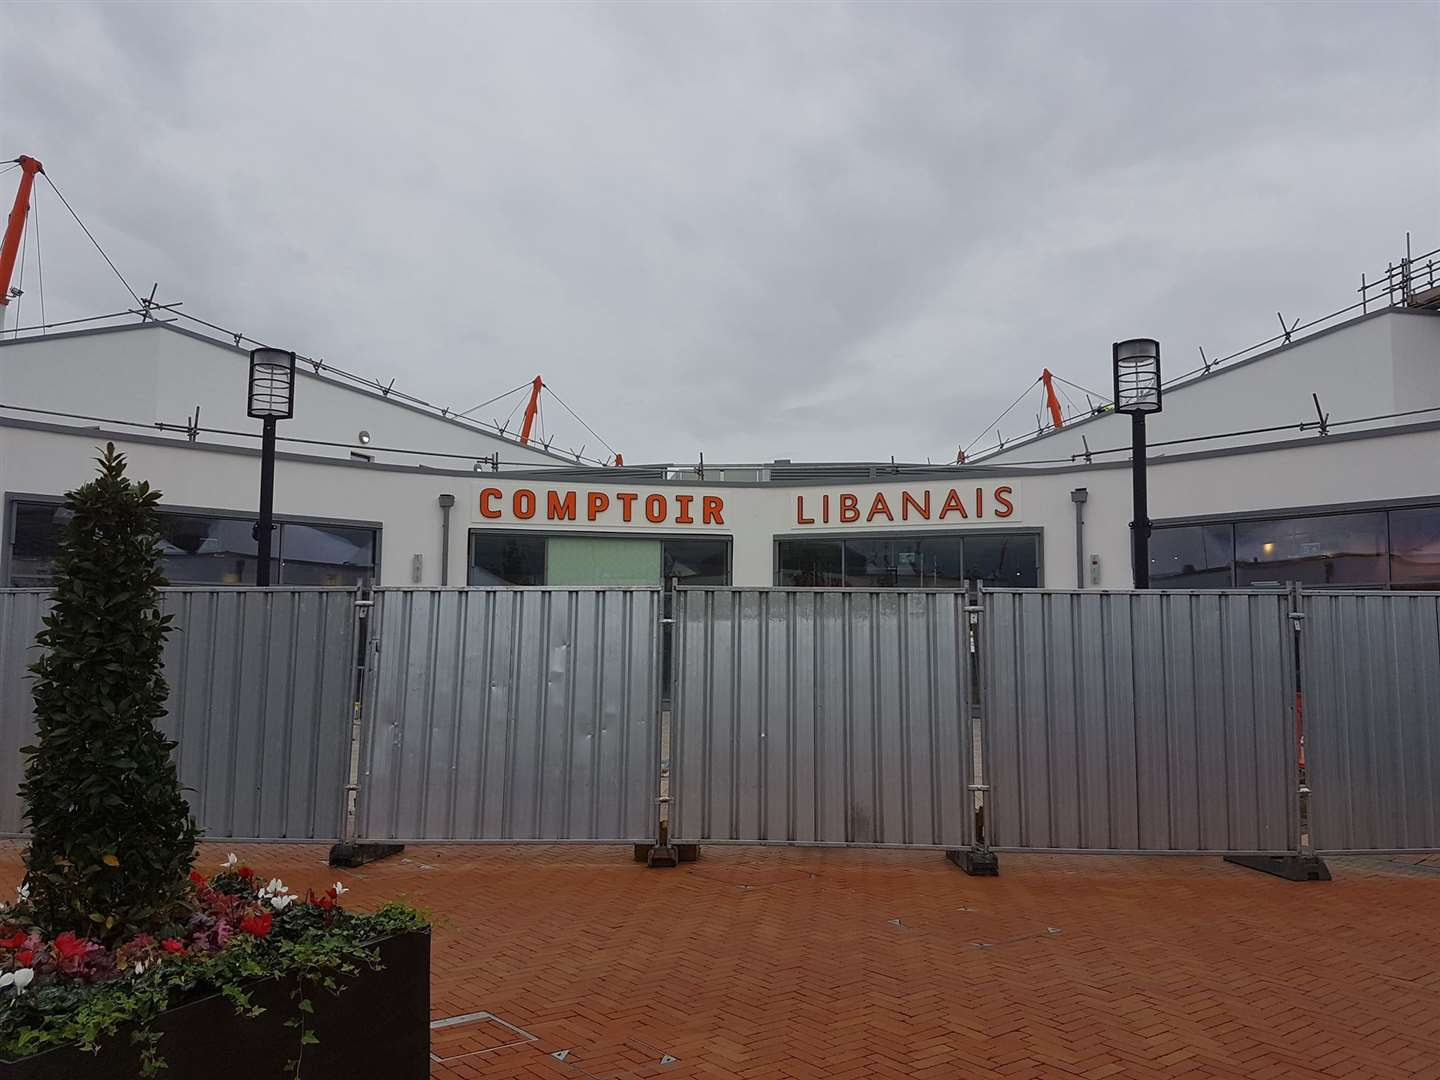 Lebanese restaurant chain Comptoir Libanais signage has gone up (16308696)